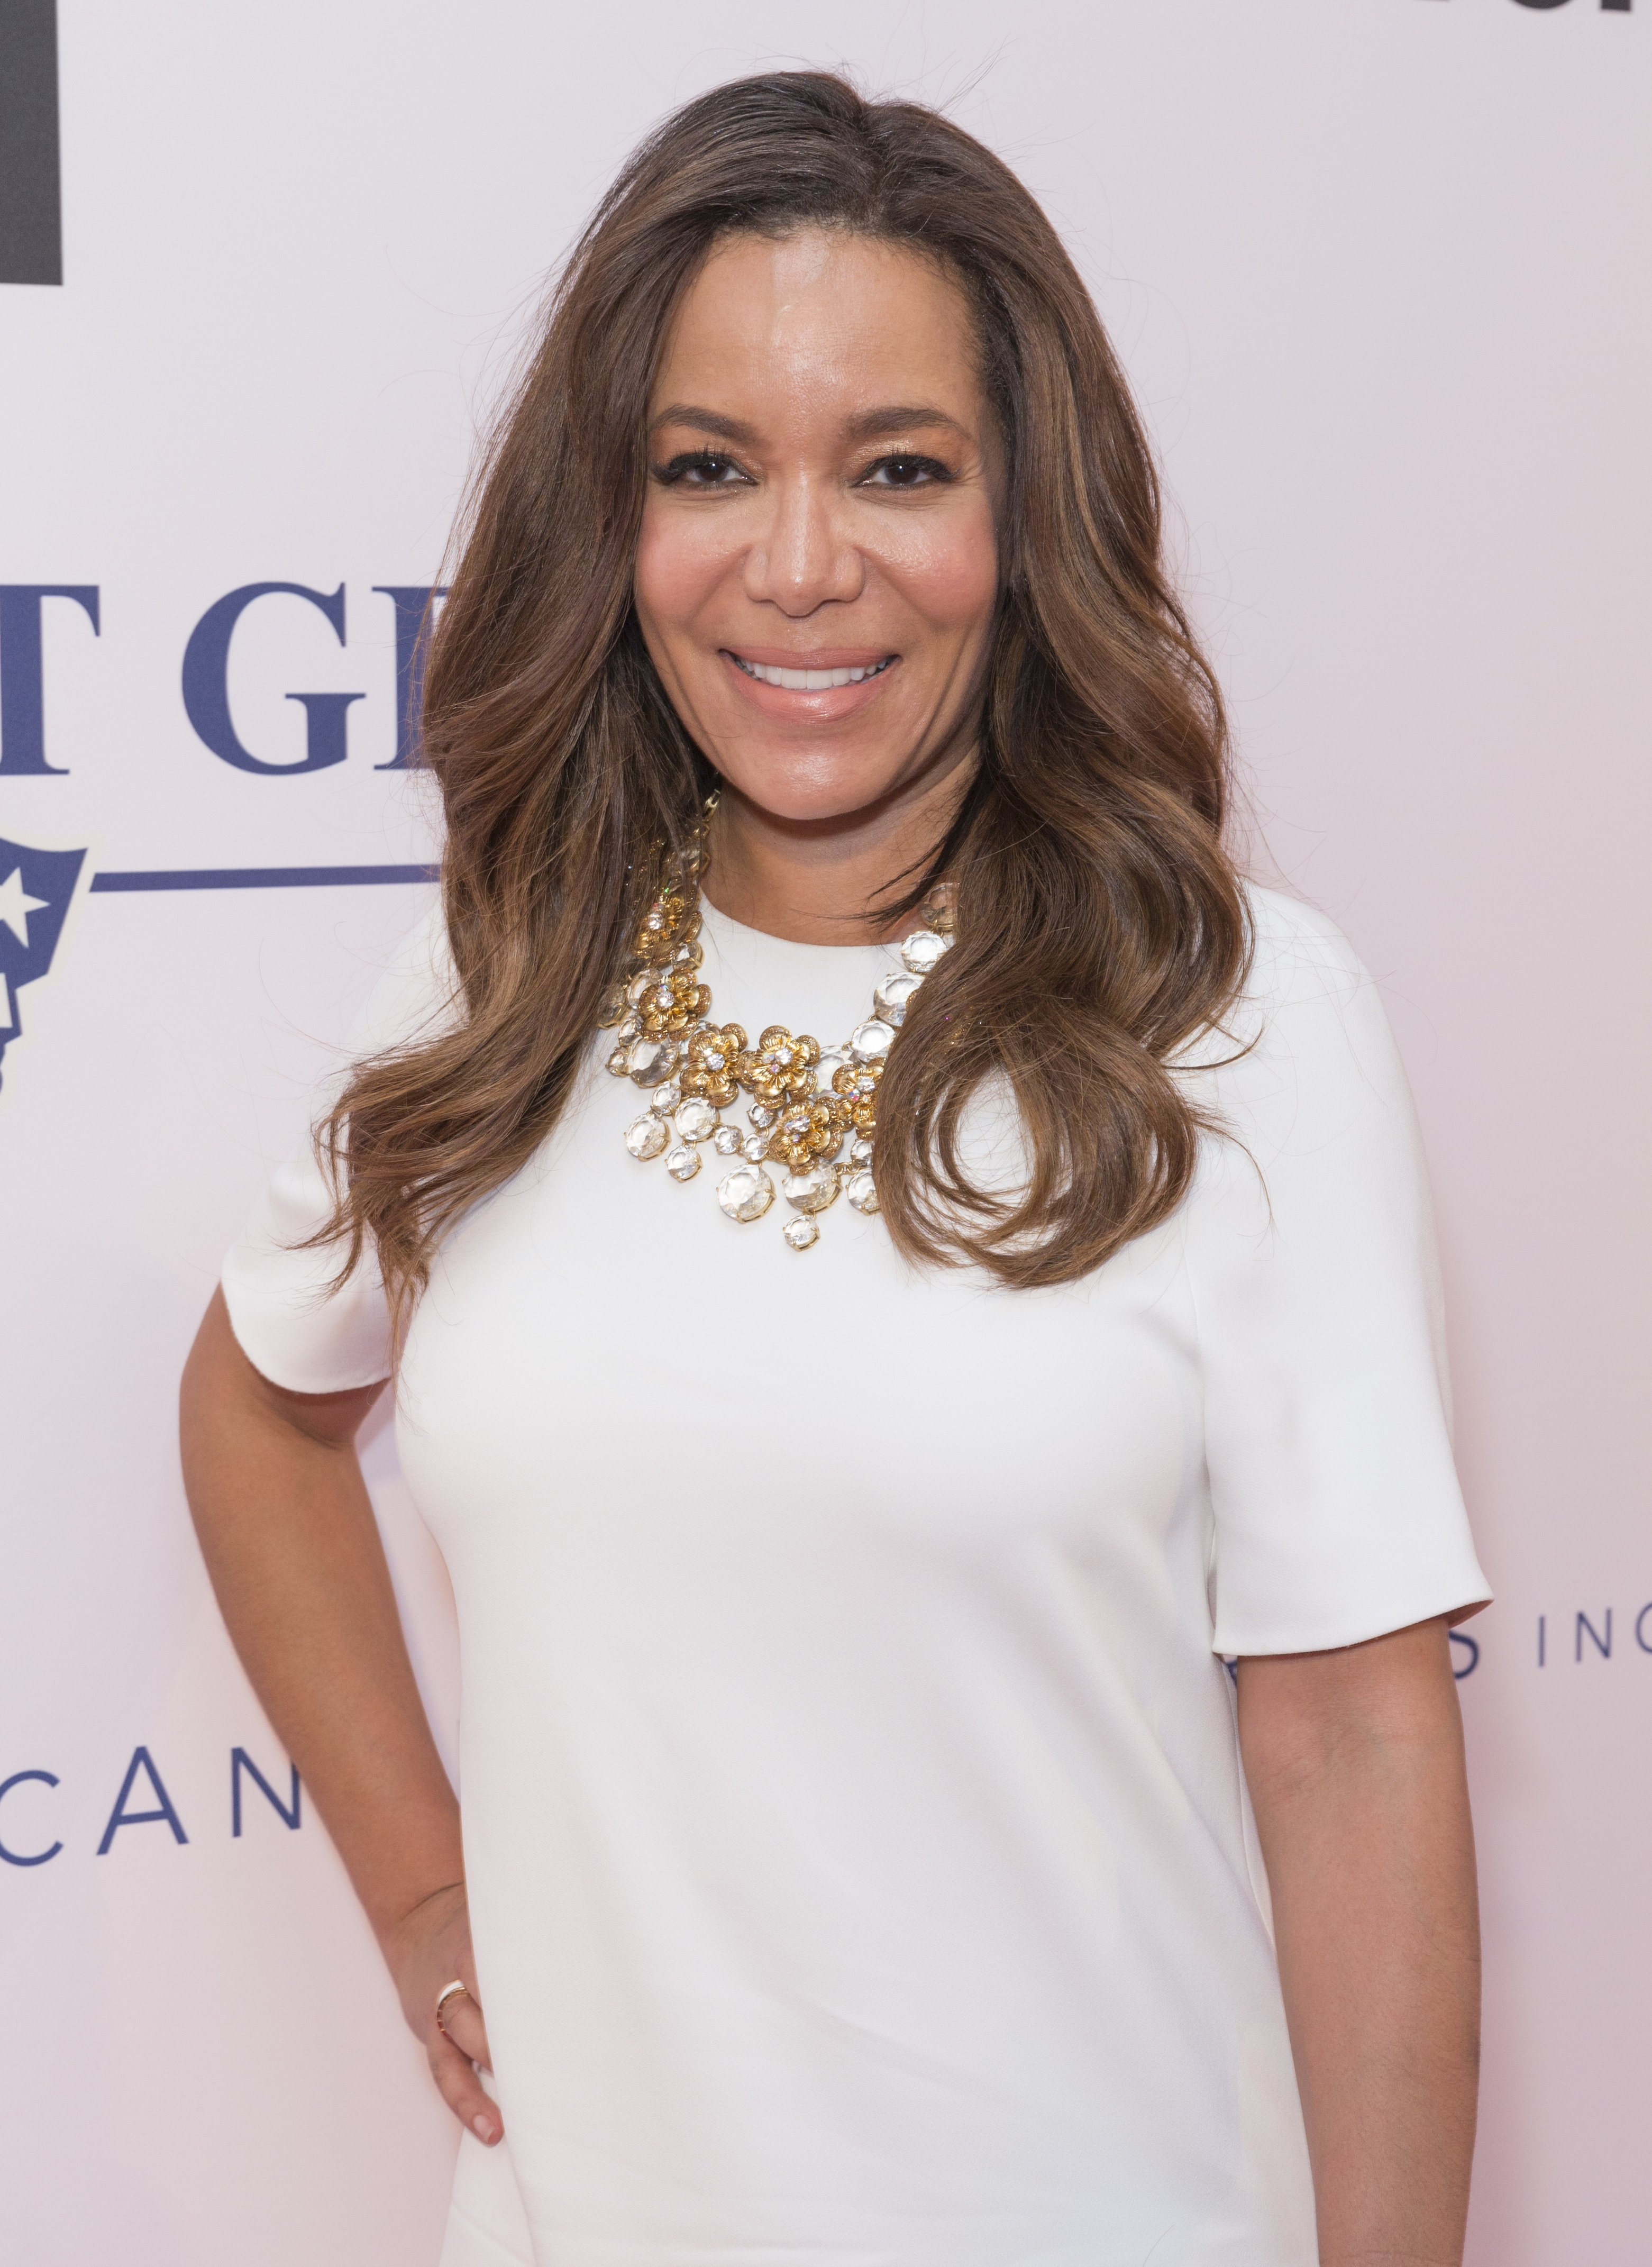 Sunny Hostin attends the Apollo Spring Gala 2017 at The Apollo Theater on June 12, 2017.   Source: Shutterstock